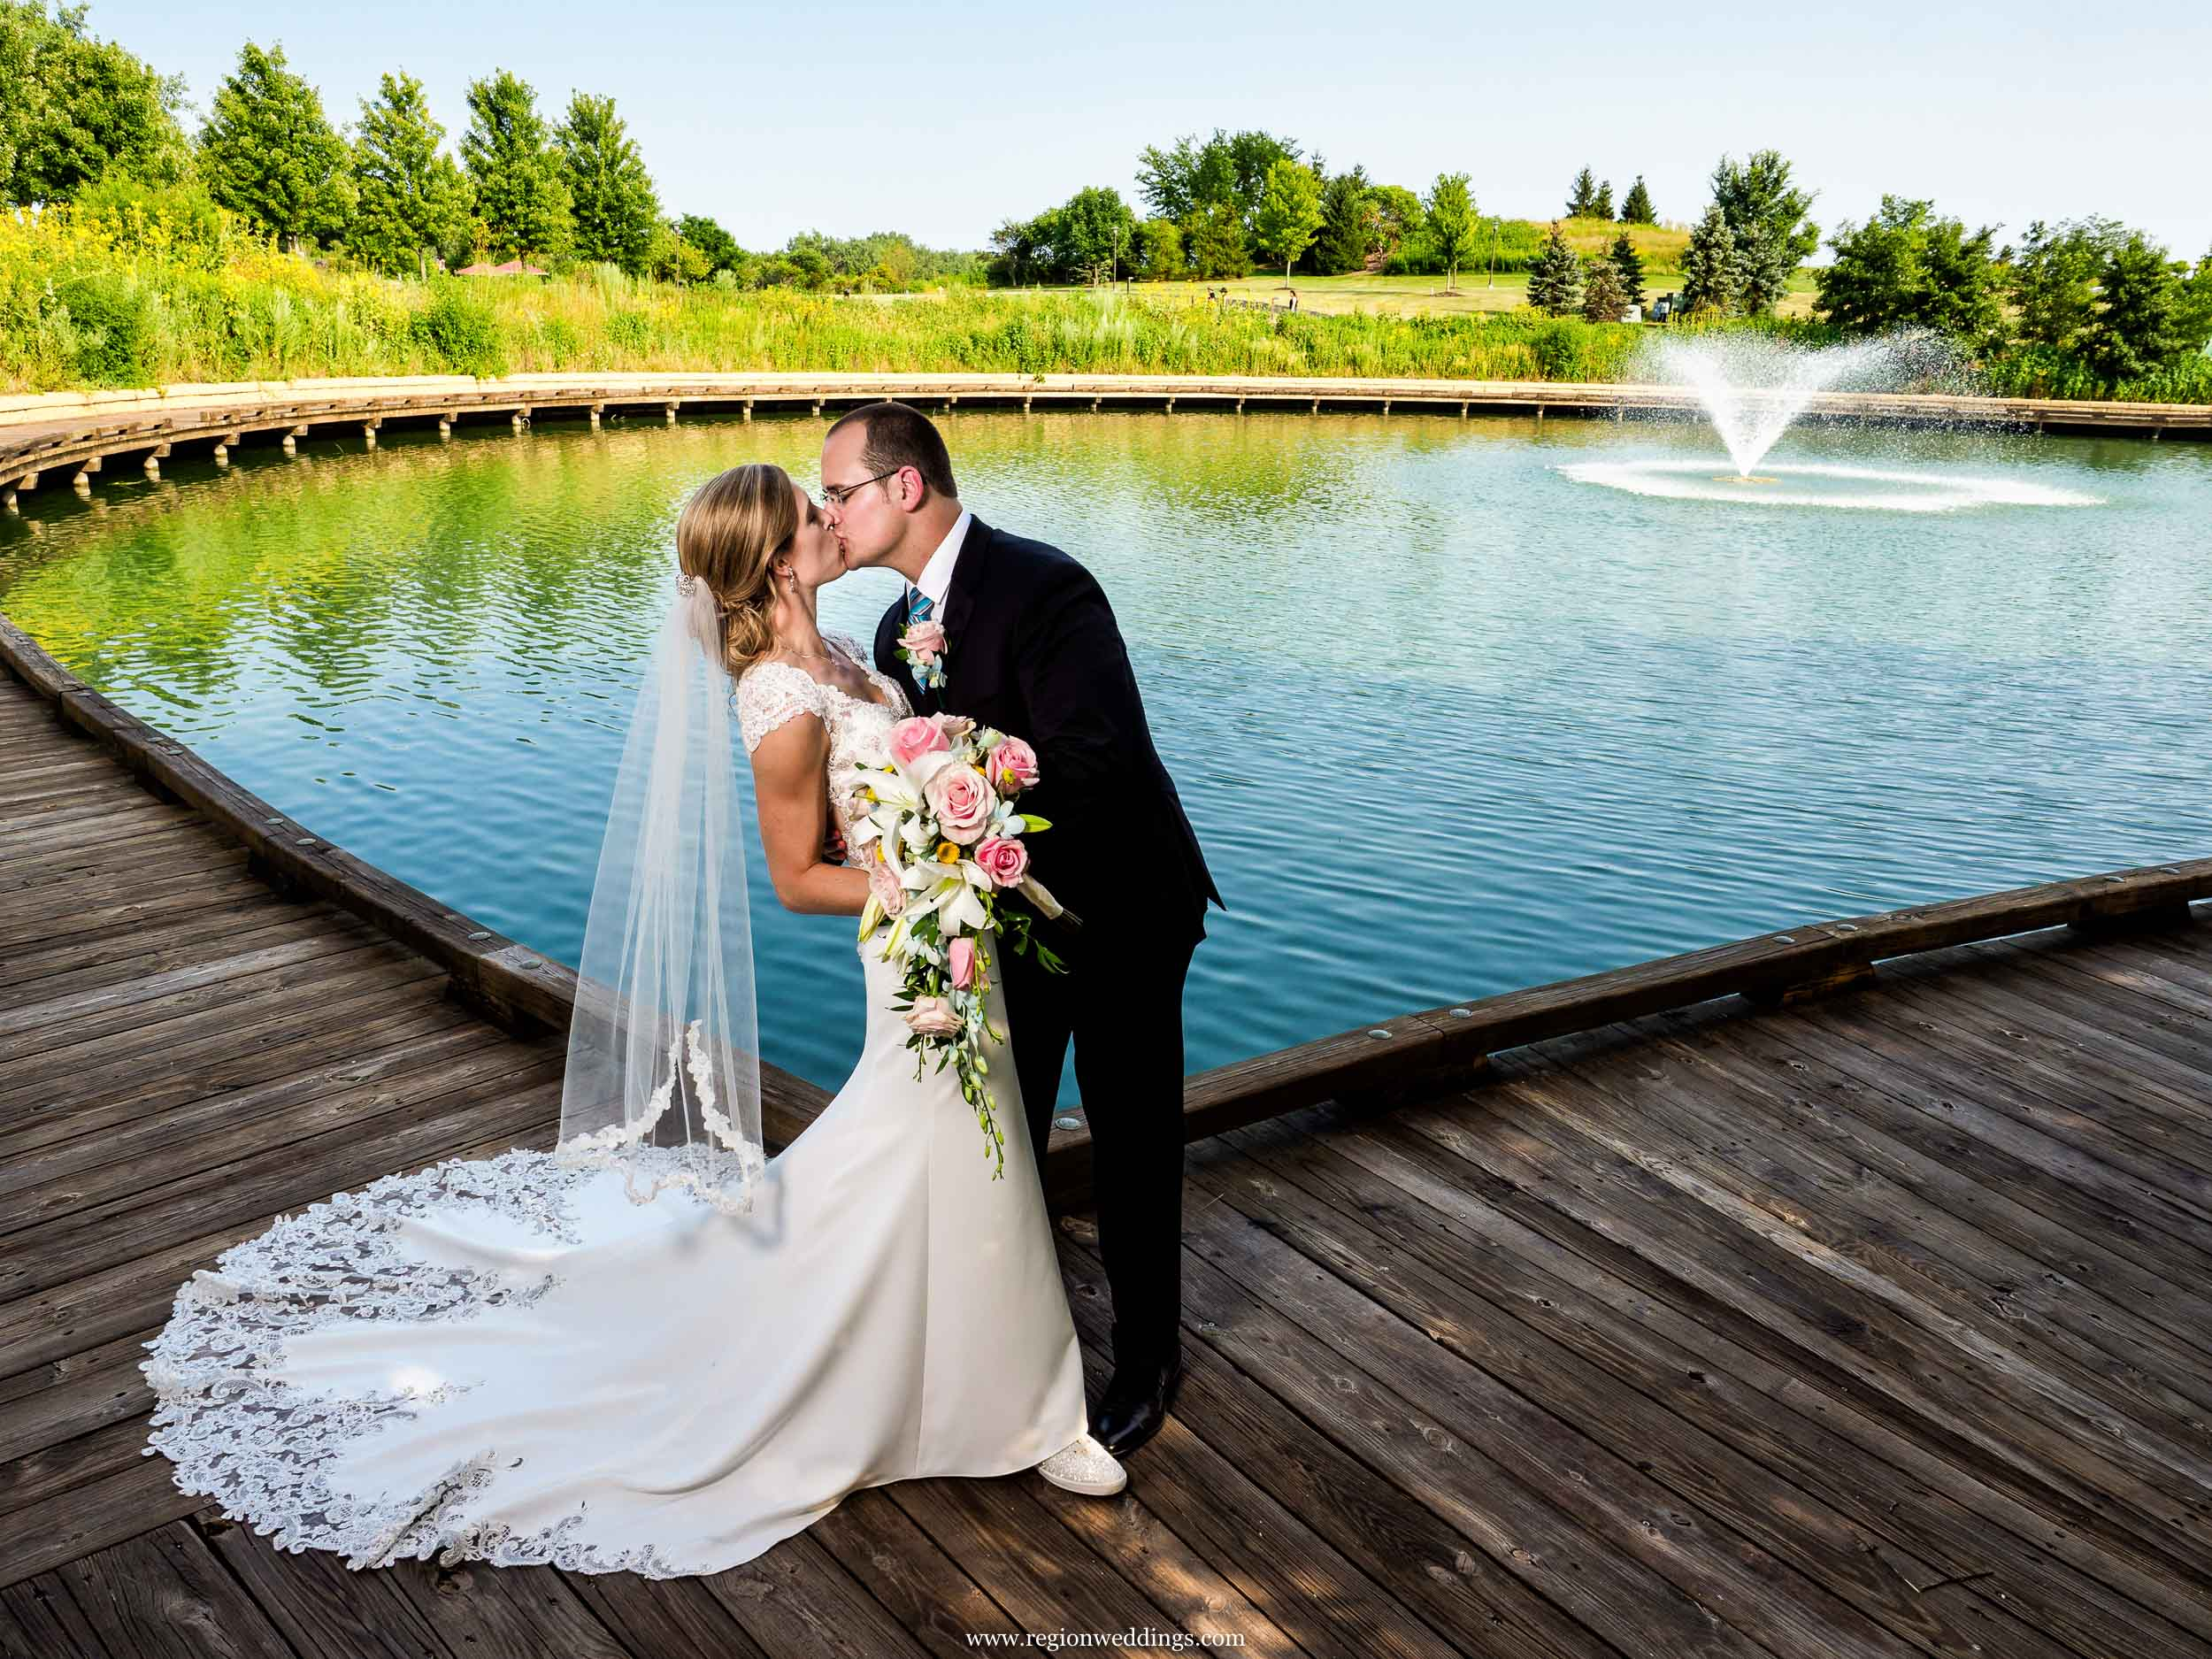 The groom kisses the bride at the edge of the Centennial Park Lake.